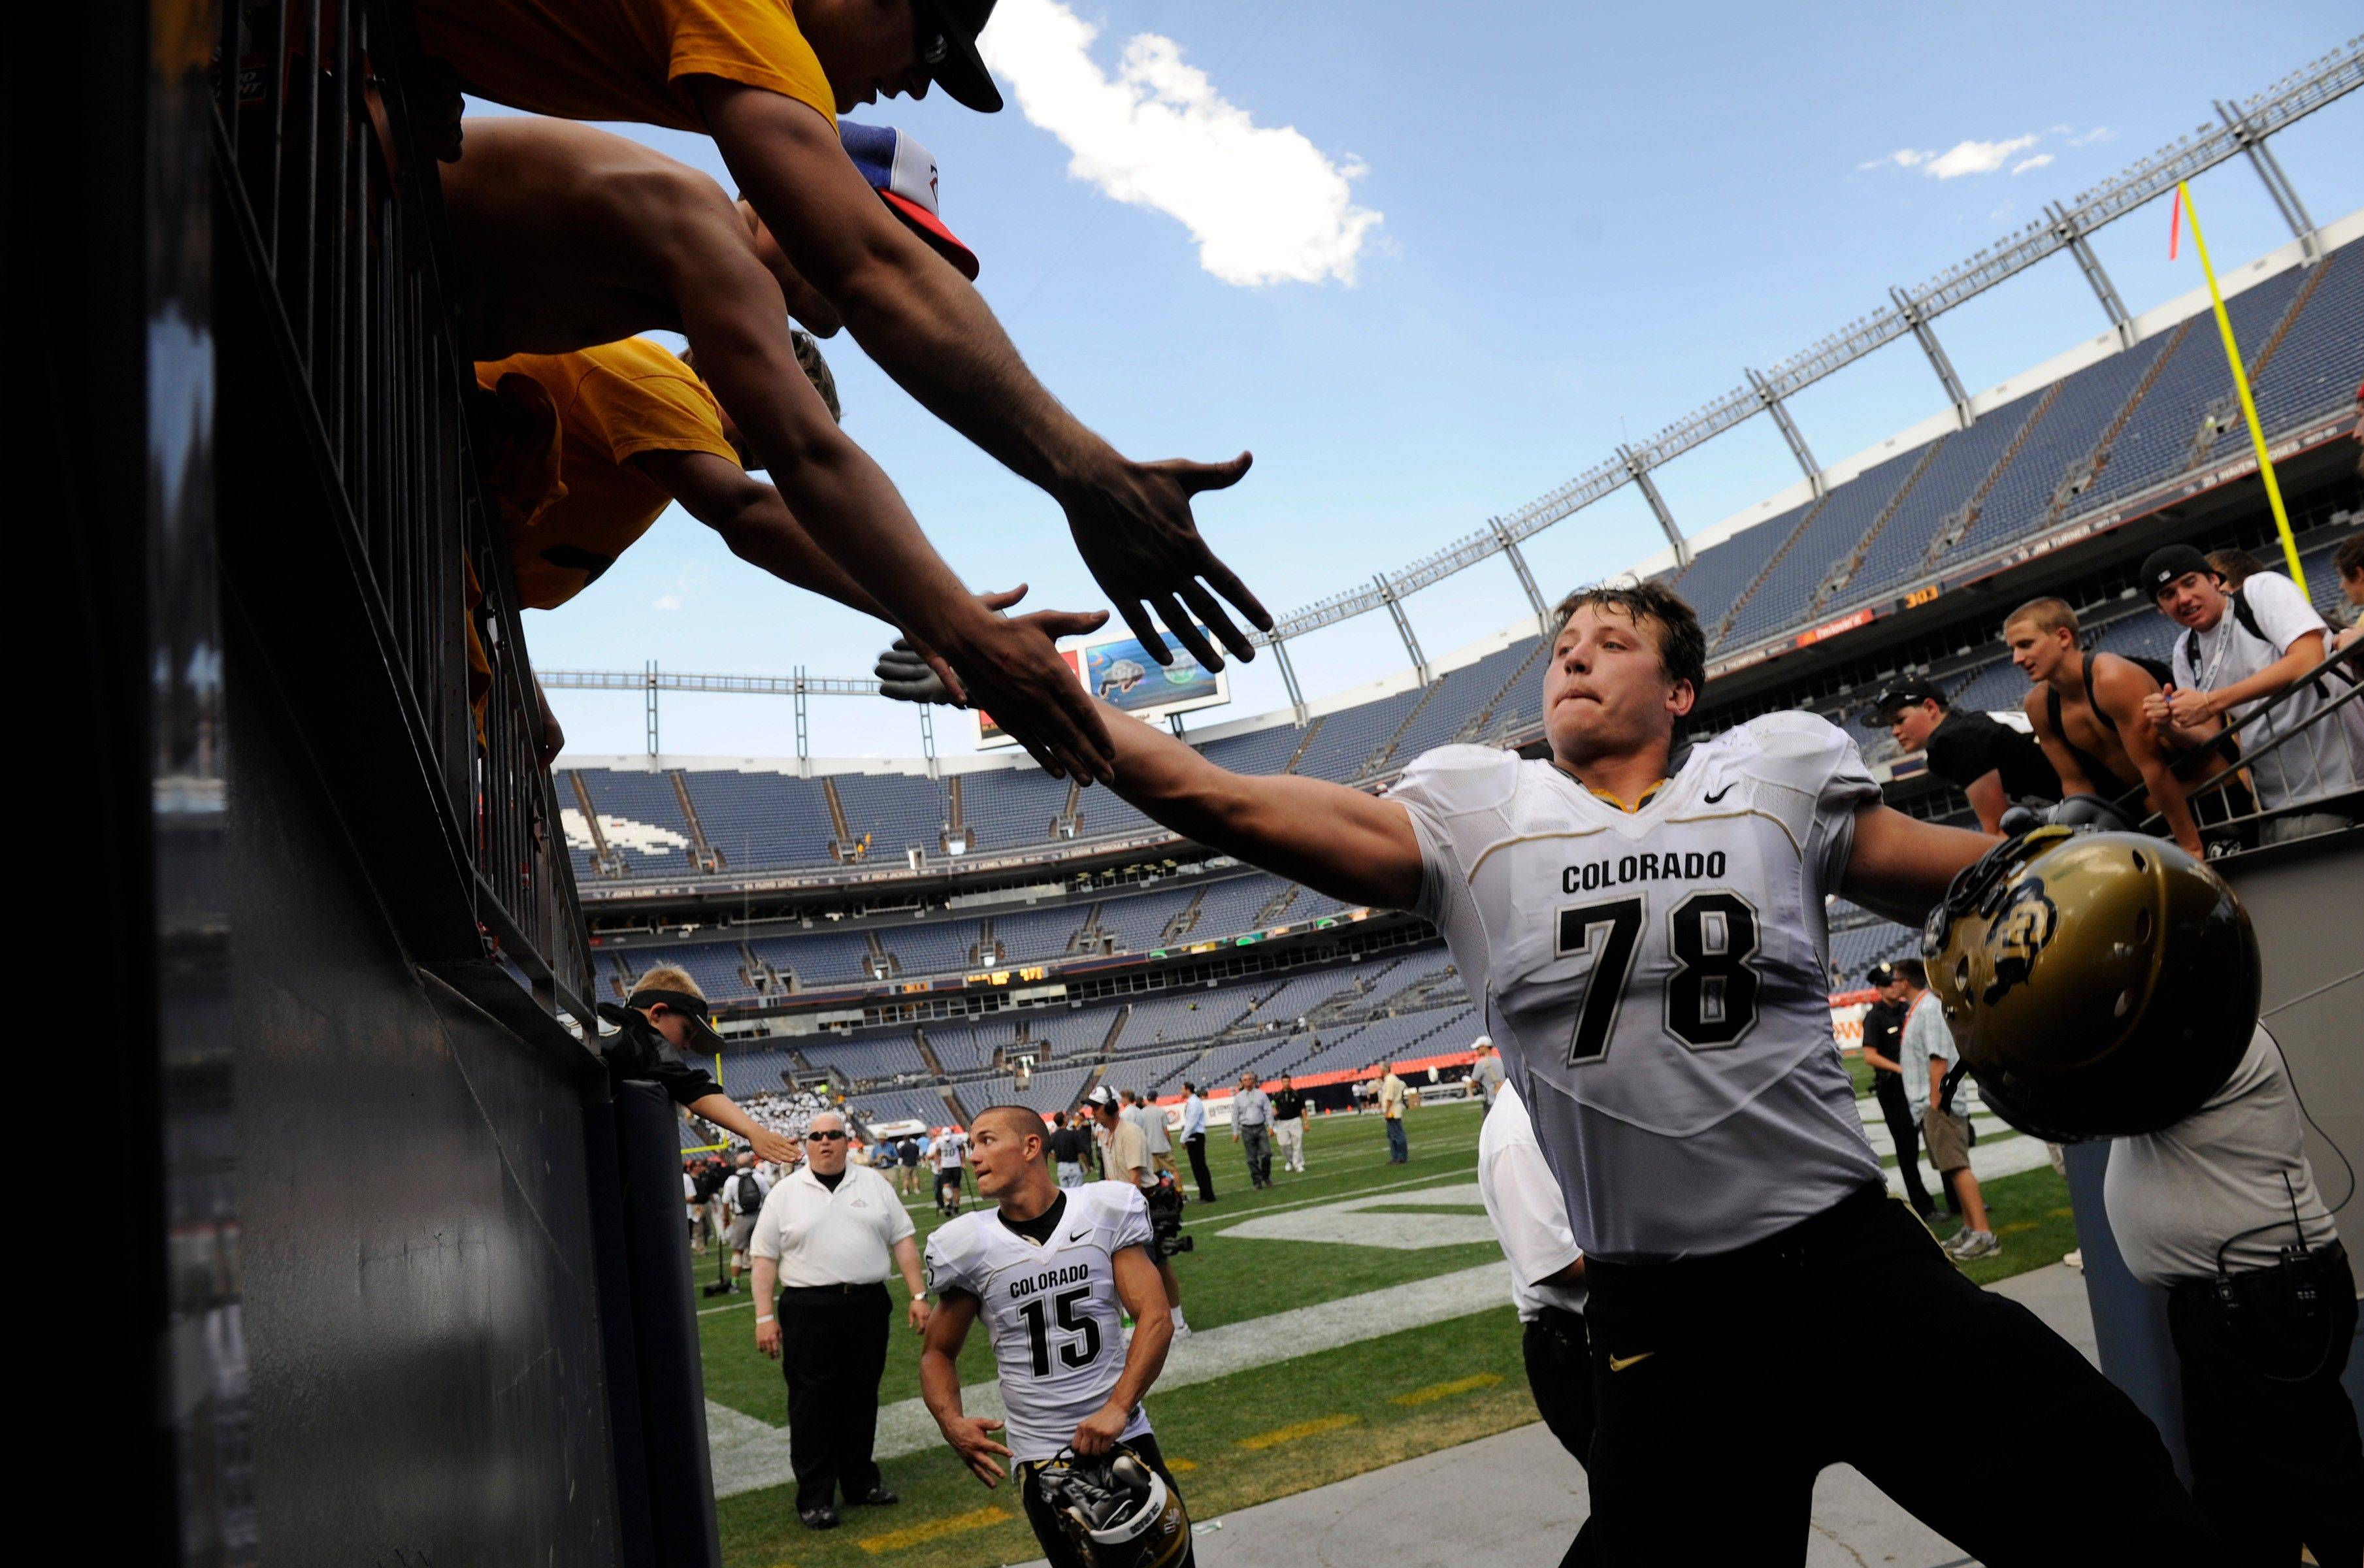 Colorado's Nate Solder, right, gives high-fives to fans after the Buffaloes defeated Colorado State 24-3 in a NCAA college football game at Invesco Field in Denver on Saturday, Sept. 4, 2010.